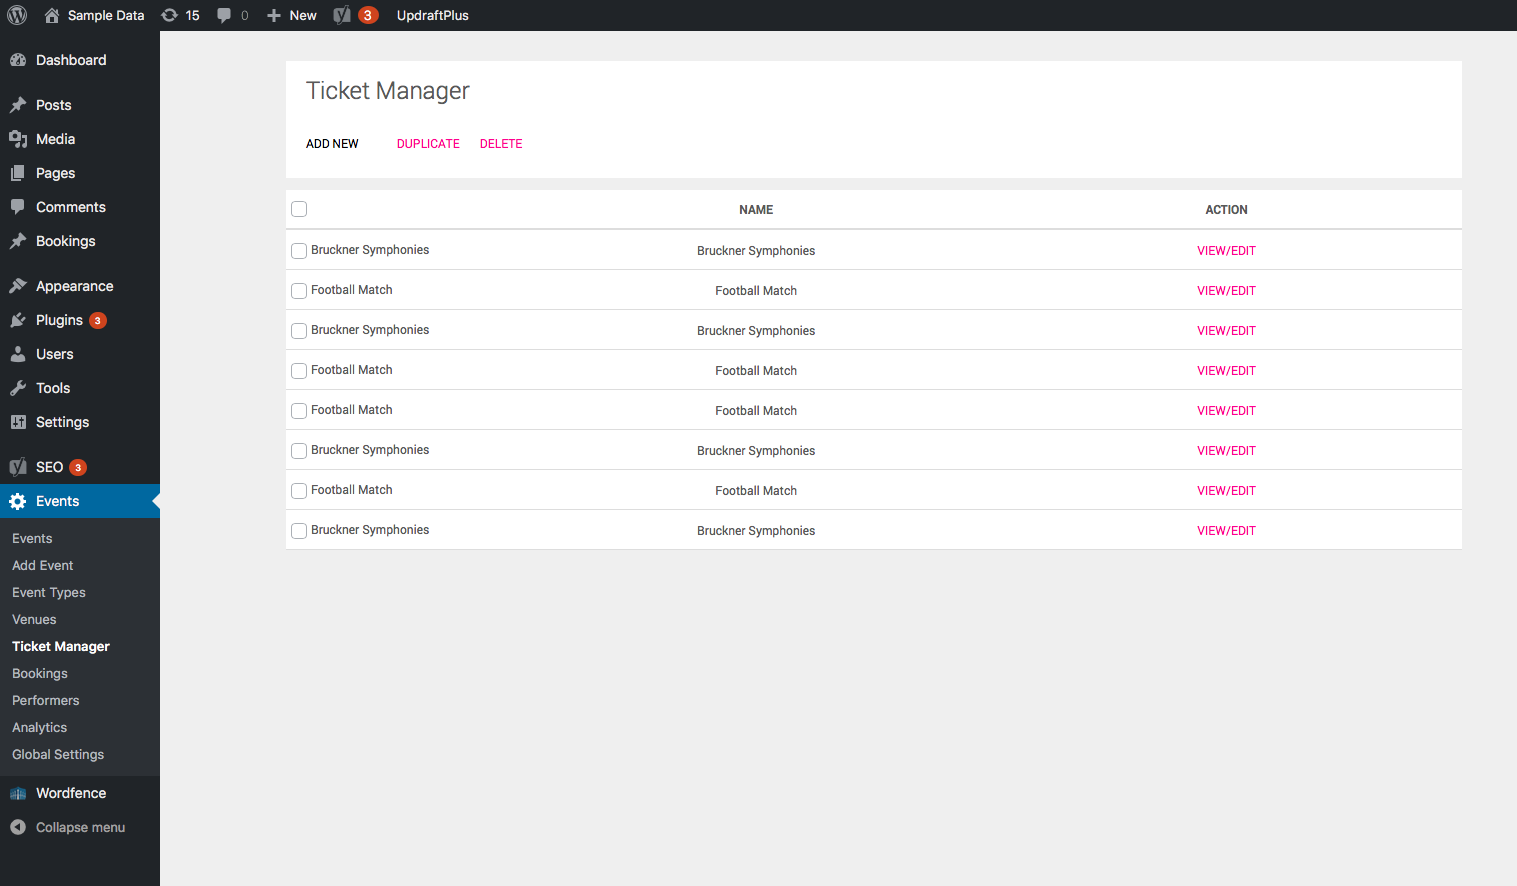 Tickets Manager - Dashboard